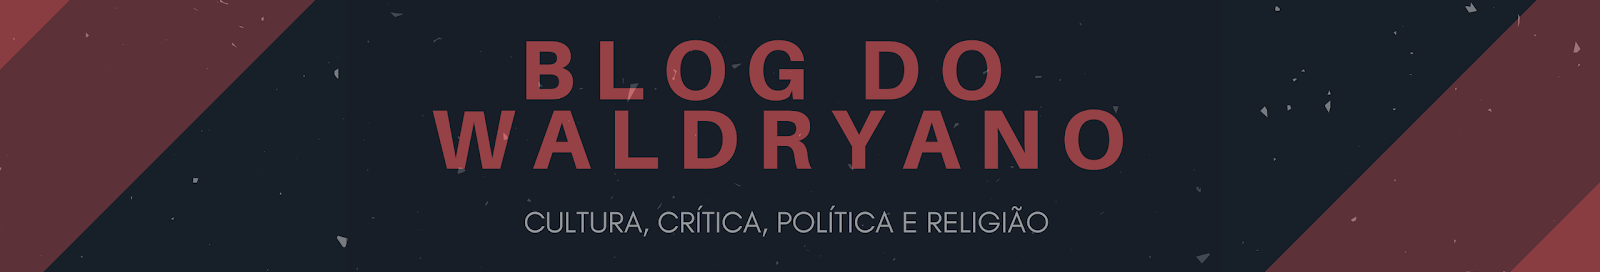 BLOG DO WALDRYANO